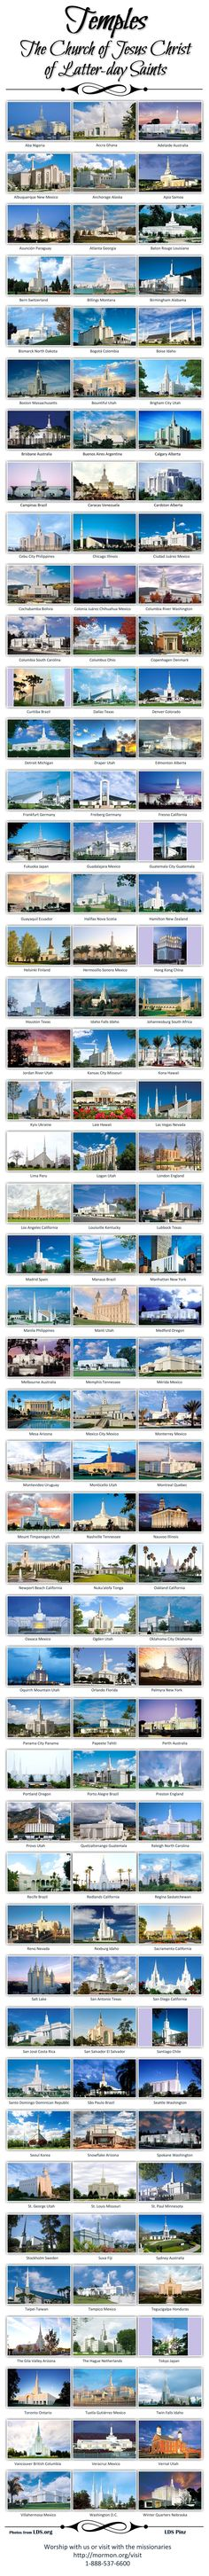 The Church of Jesus Christ of Latter-day Saints (Mormon) has 141 operating Temples around the world. Learn more about LDS Temples at http://www.lds.org/church/temples